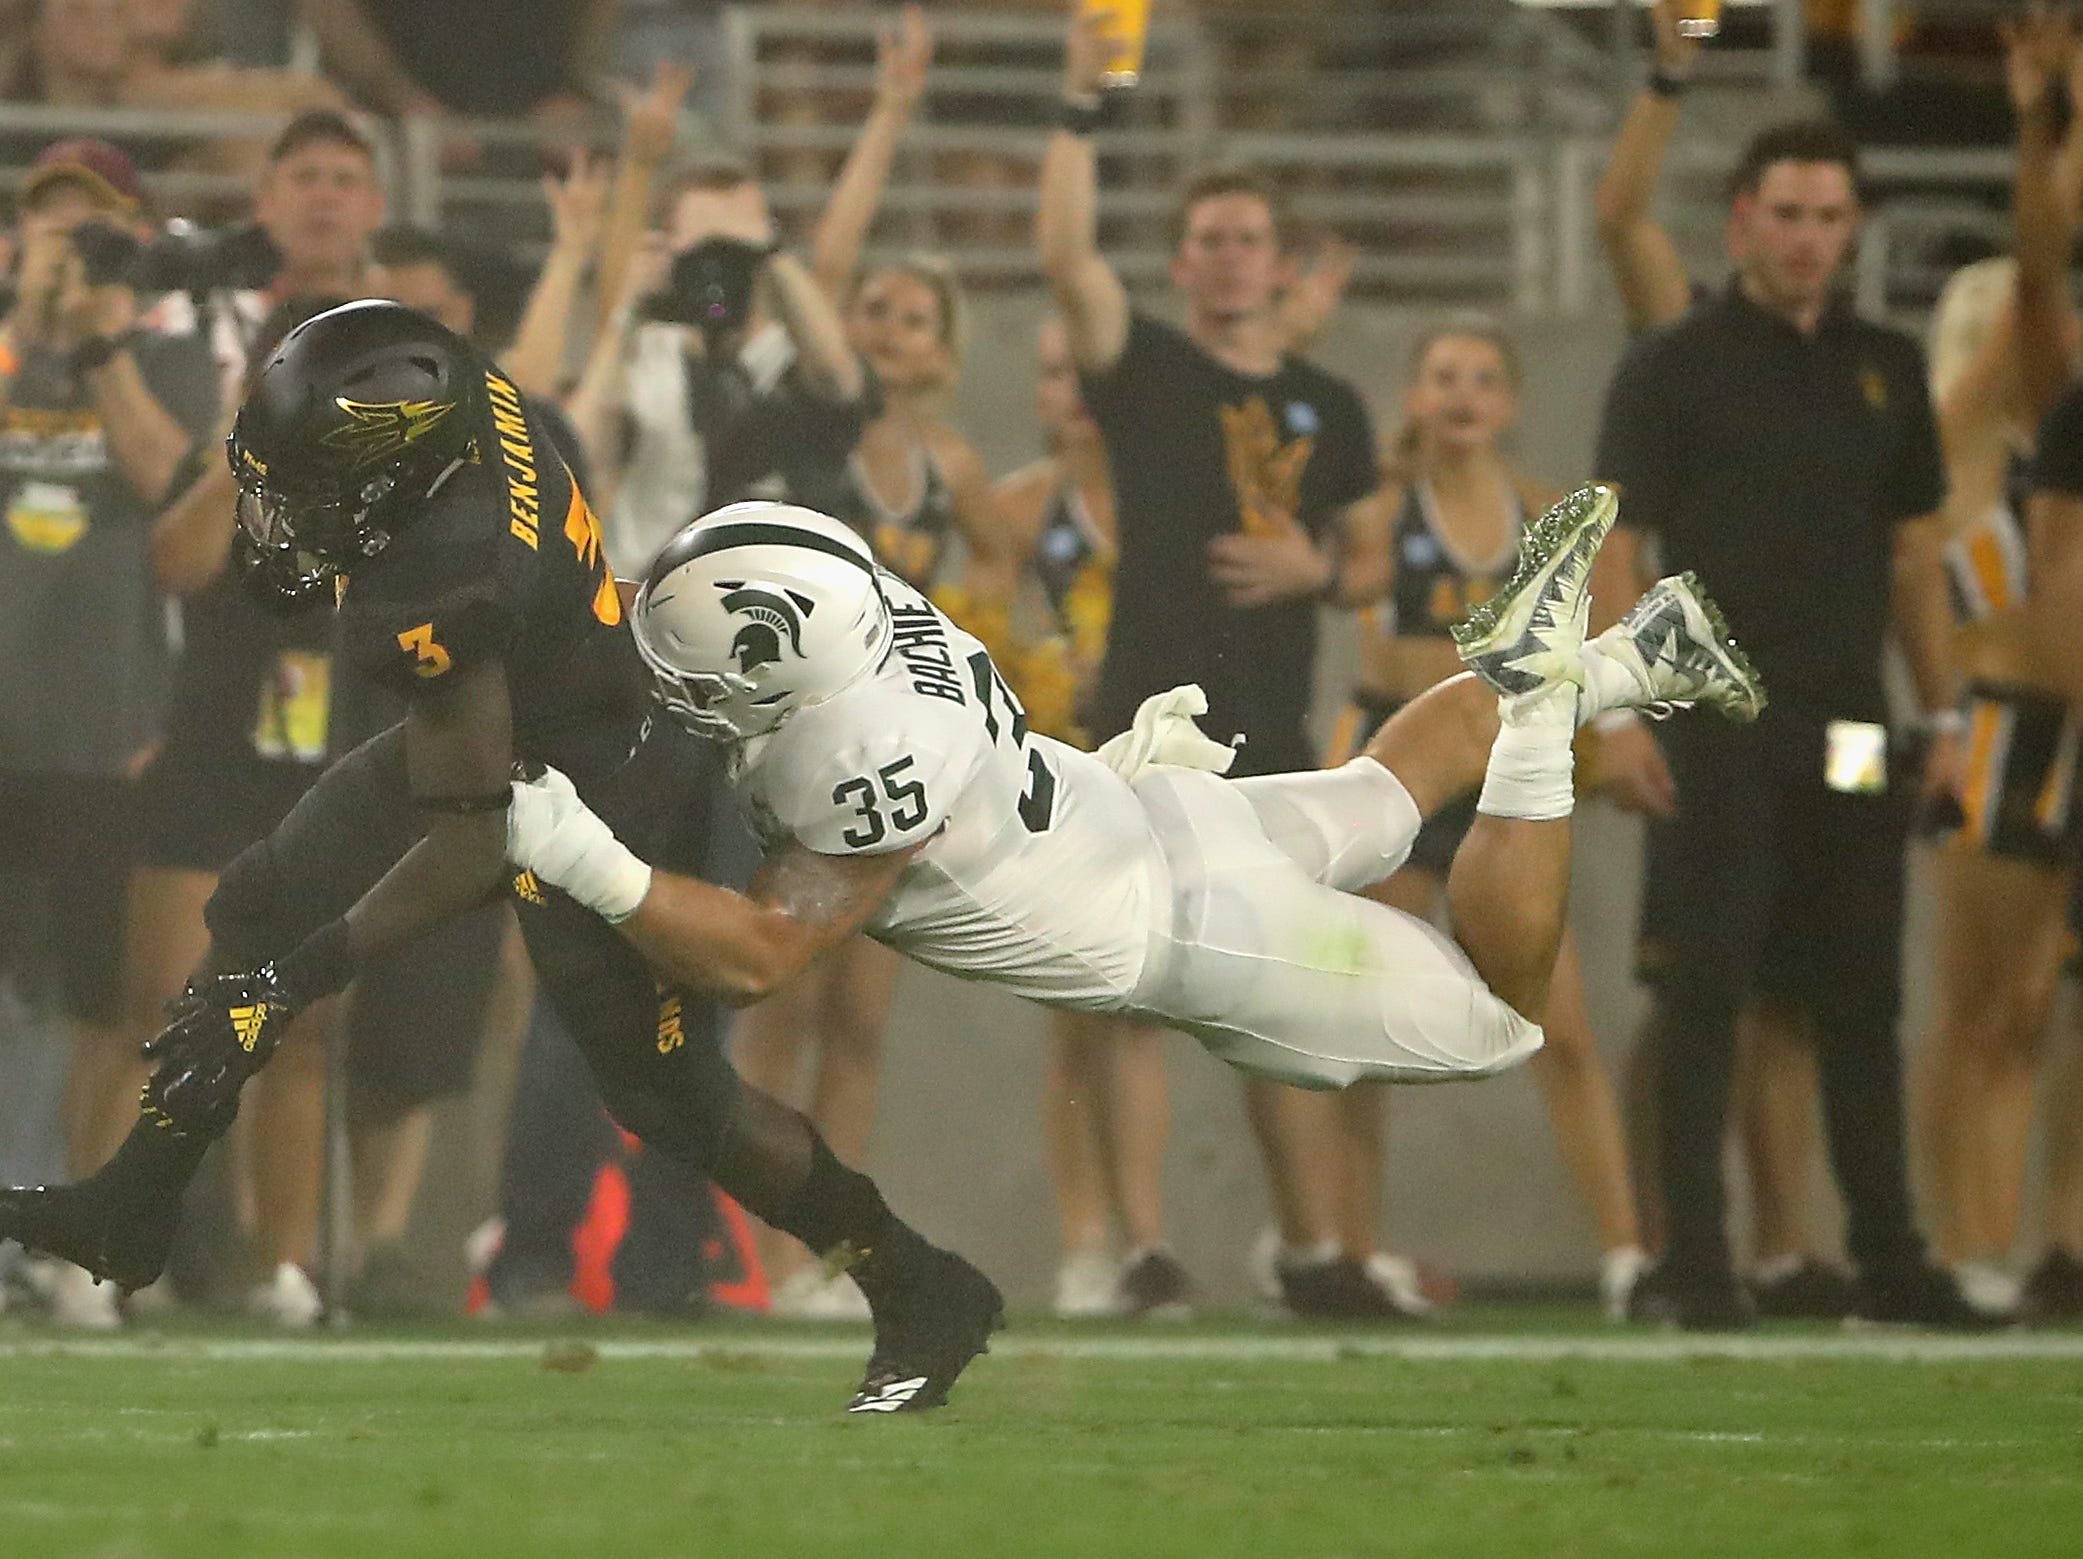 TEMPE, AZ - SEPTEMBER 08:  Running back Eno Benjamin #3 of the Arizona State Sun Devils rushes the football under pressure from linebacker Joe Bachie #35 of the Michigan State Spartans during the first half of the college football game at Sun Devil Stadium on September 8, 2018 in Tempe, Arizona.  (Photo by Christian Petersen/Getty Images)